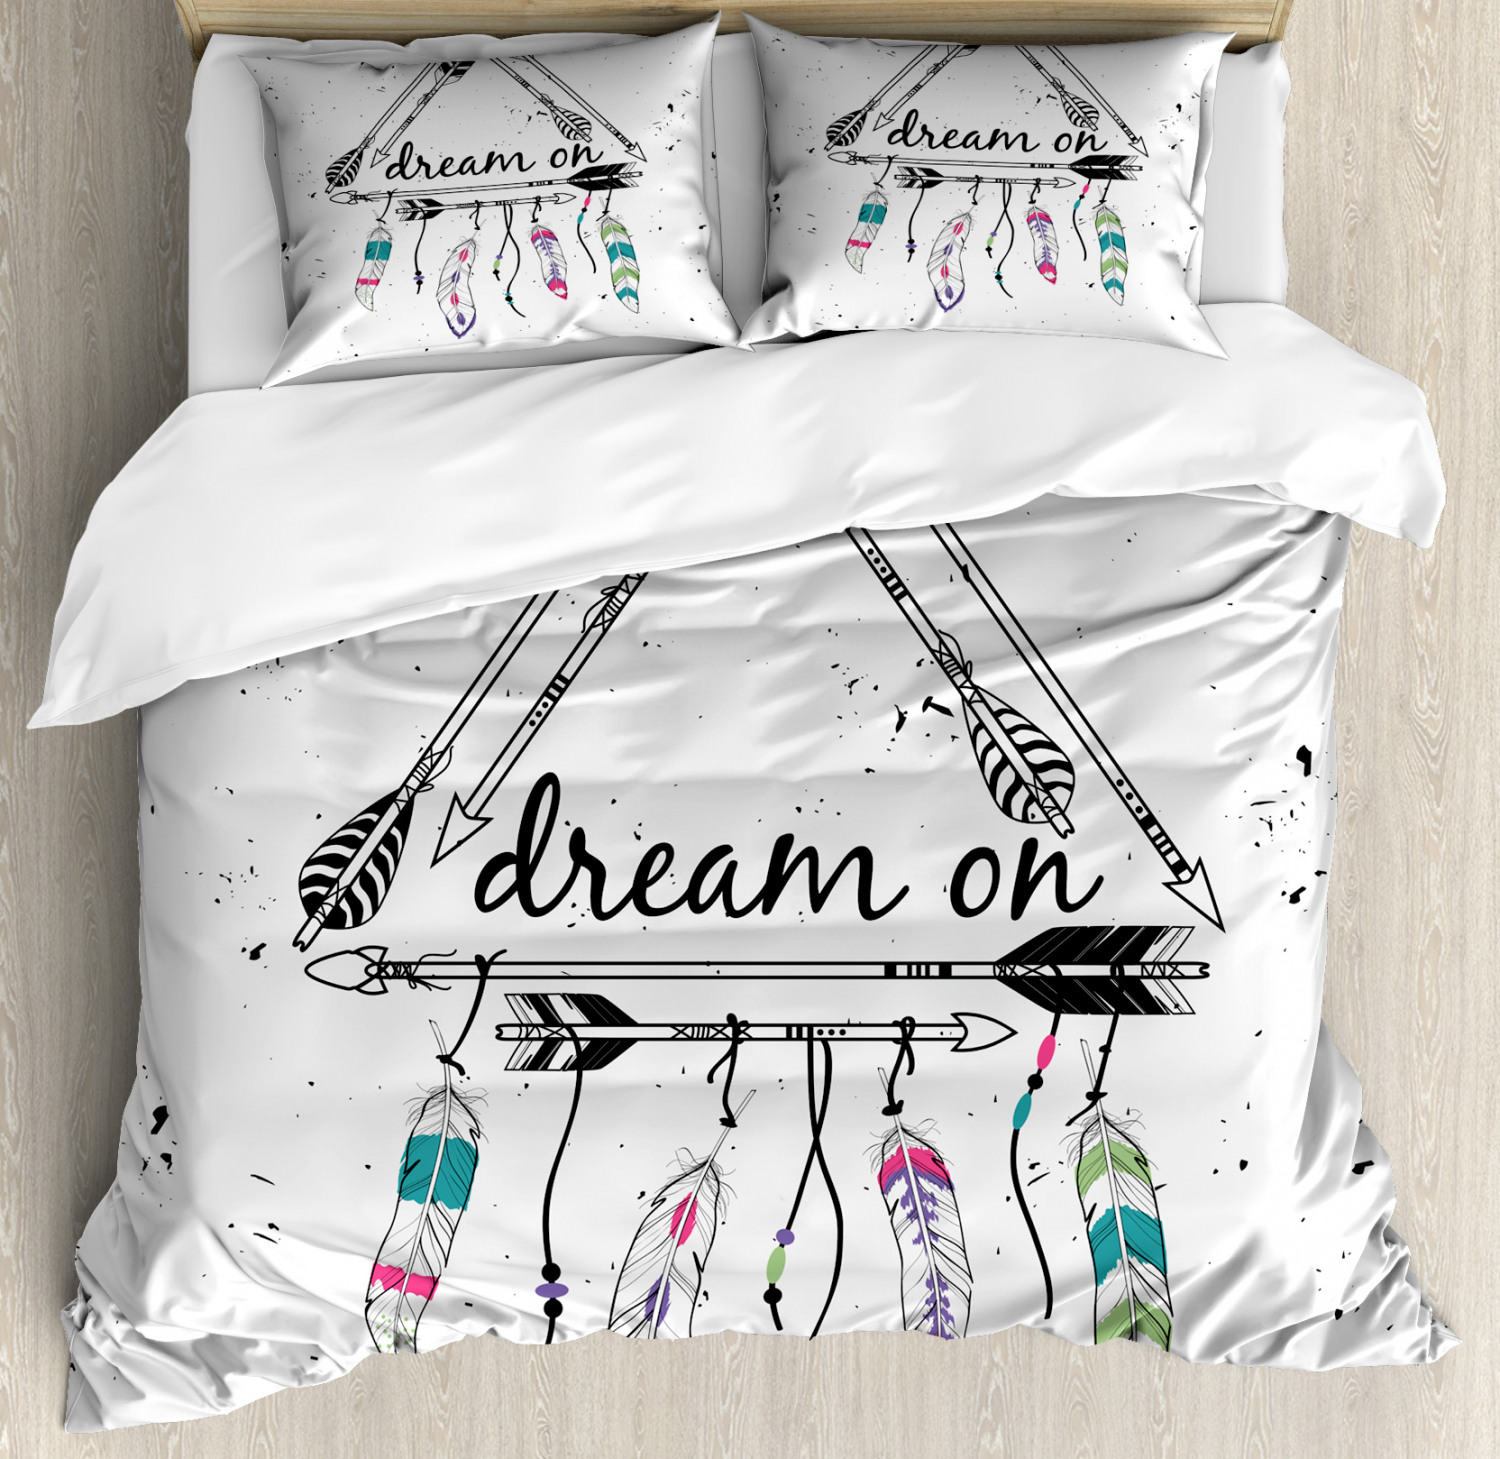 Indie Duvet Cover Set with Pillow Shams Bohemian Tribal Dream On Print